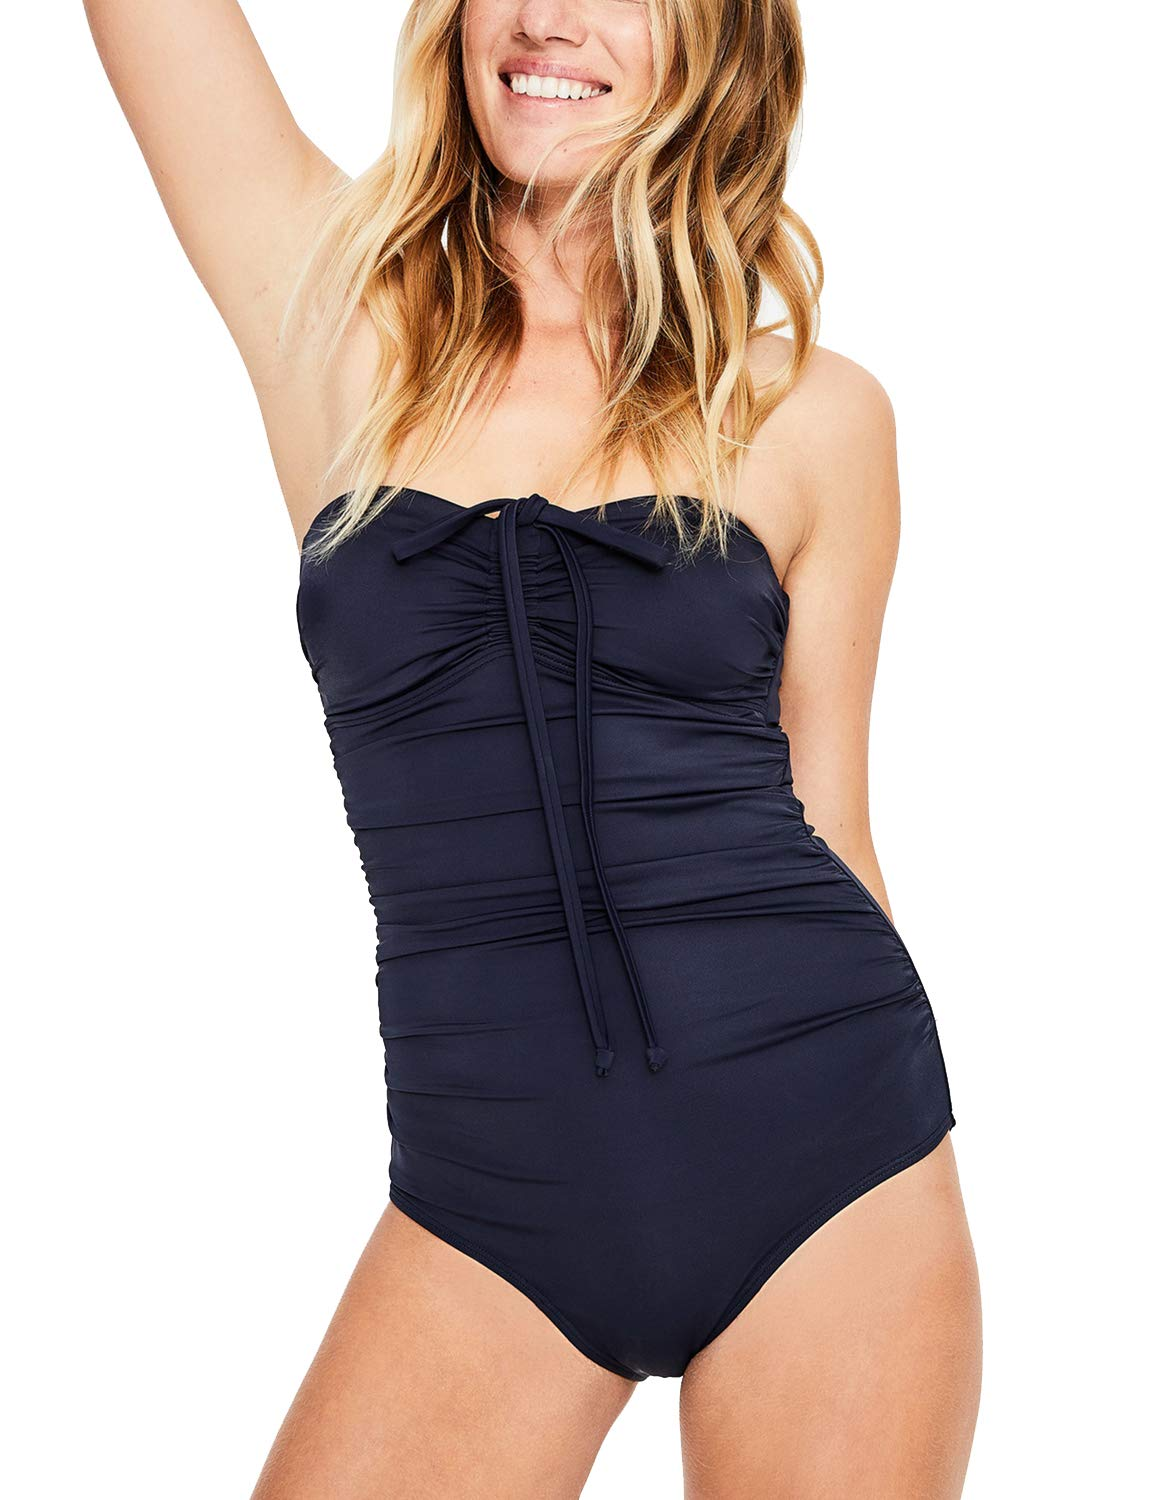 MAY Womens Bandeau One Piece Swimsuit Runched Tummy Control Bathing Suit Black